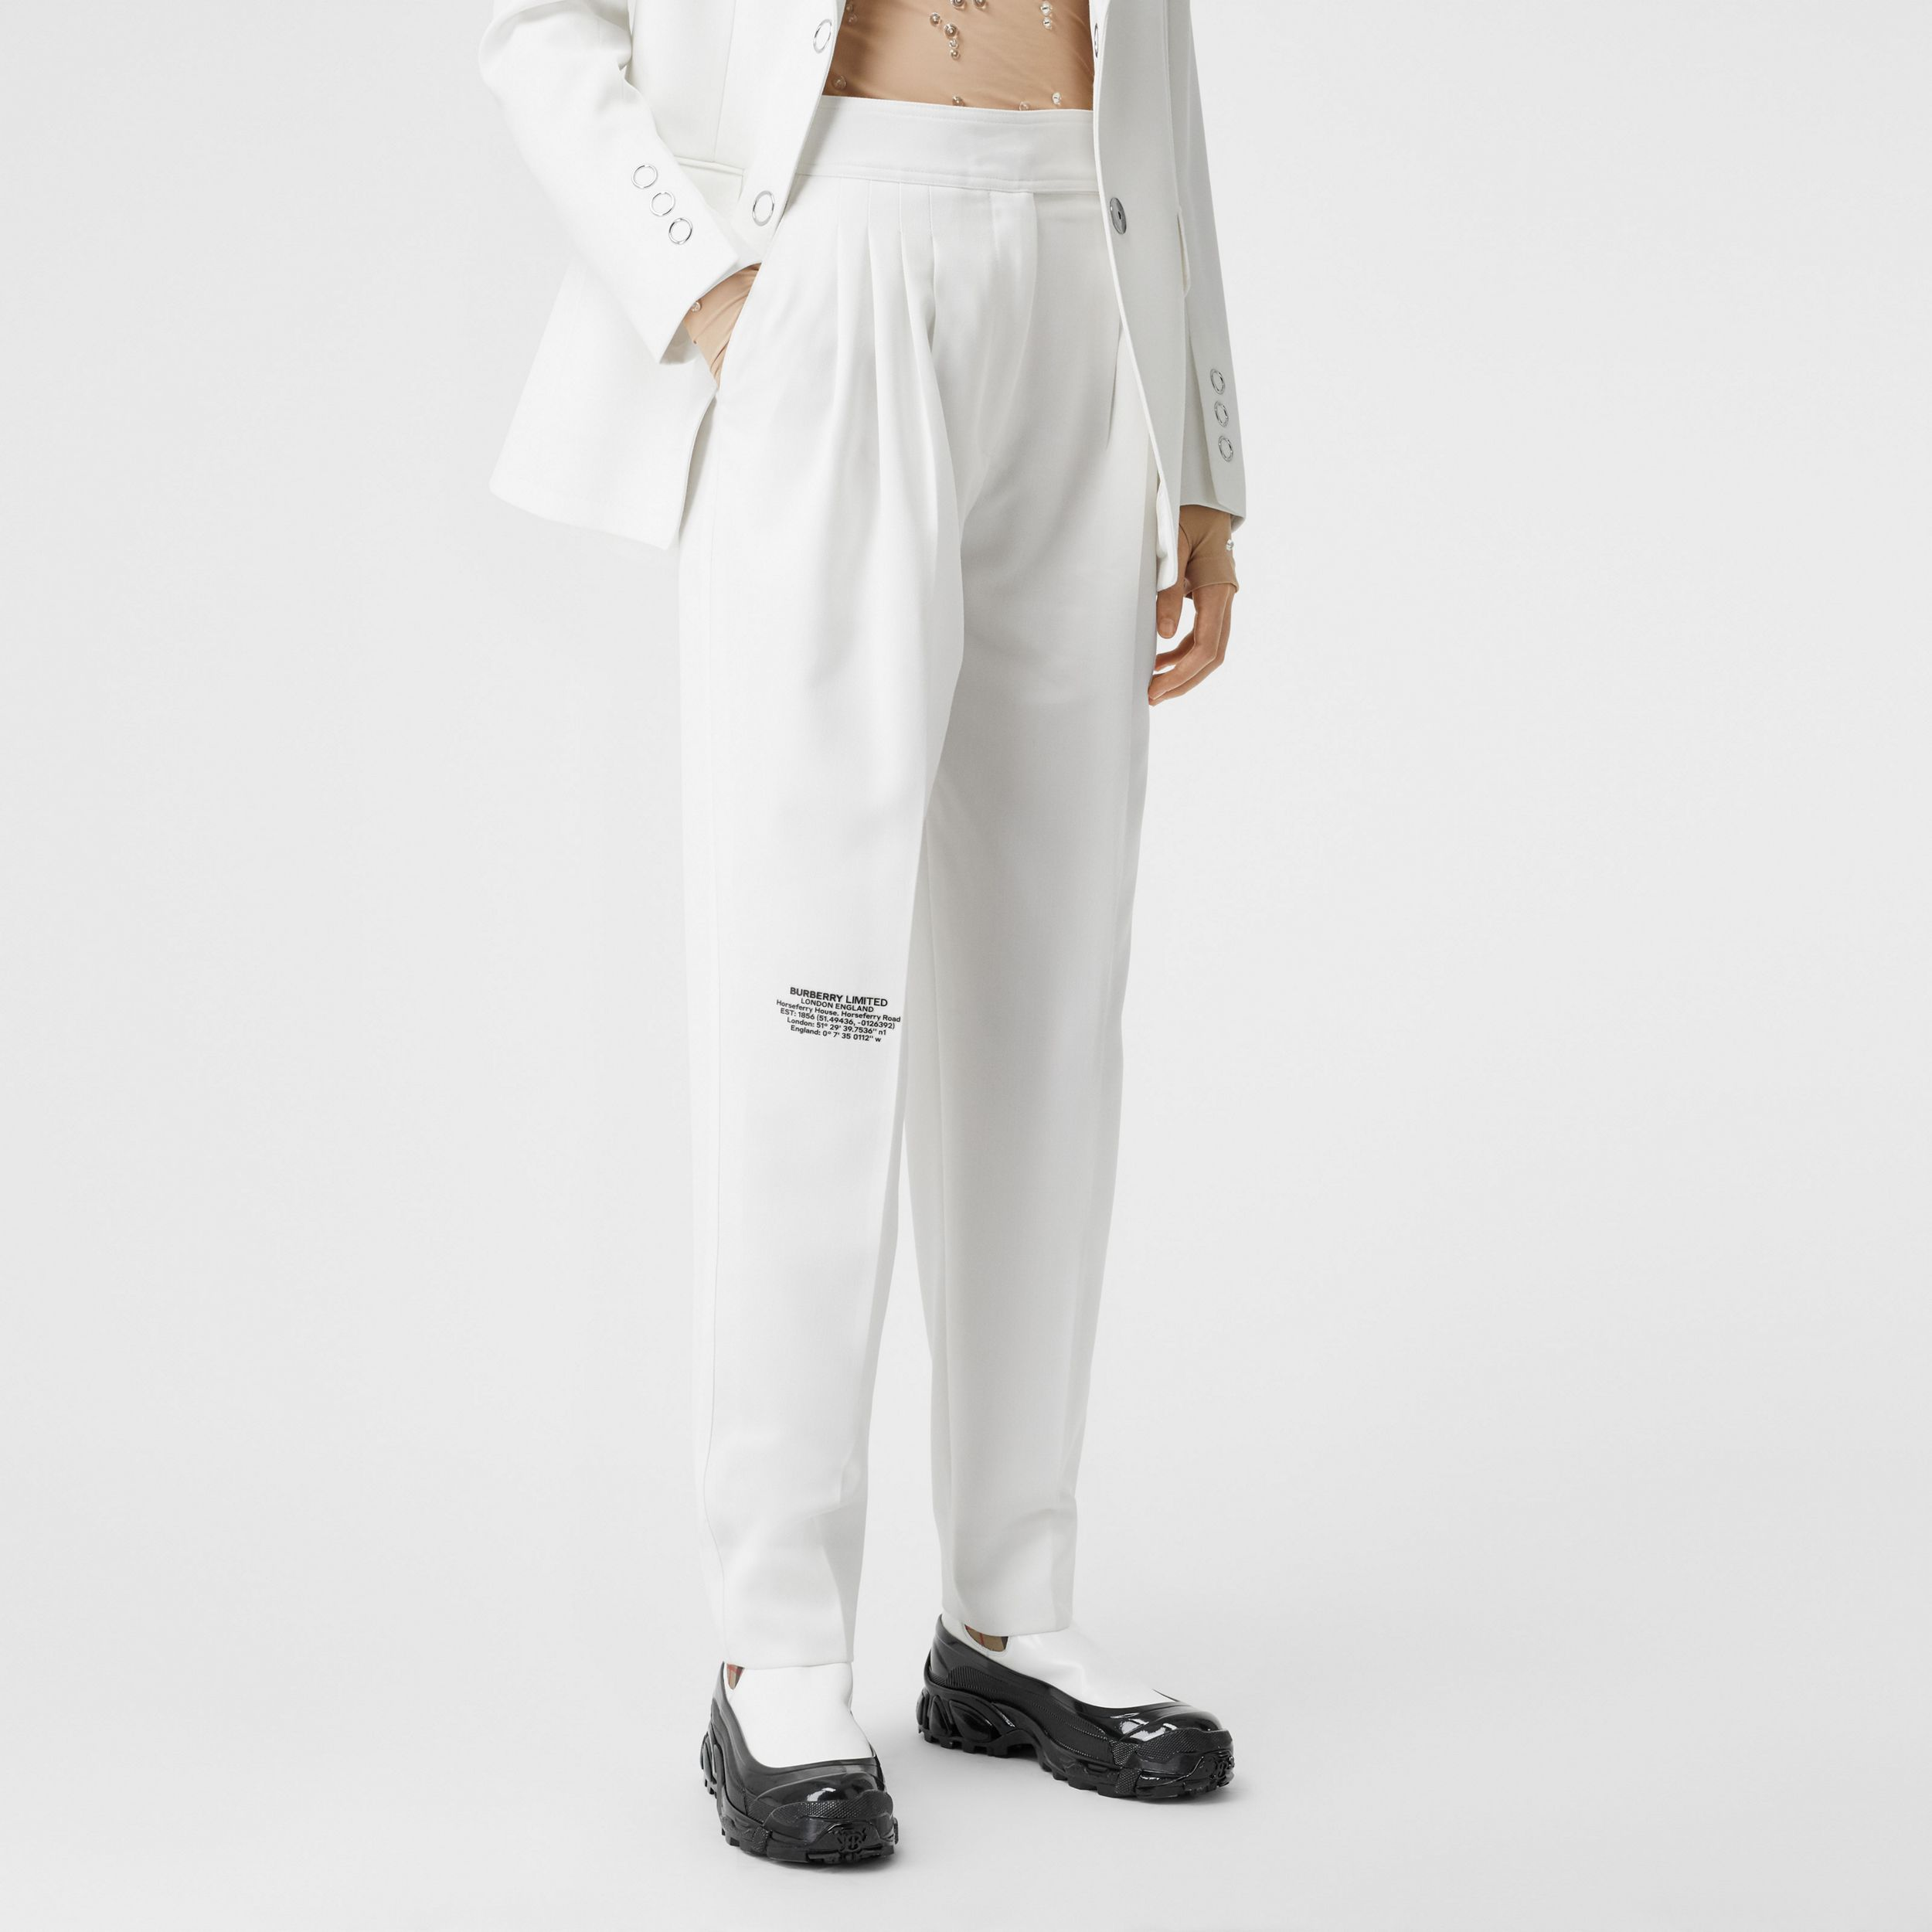 Location Print Wool Blend Tailored Trousers in Optic White - Women | Burberry - 2